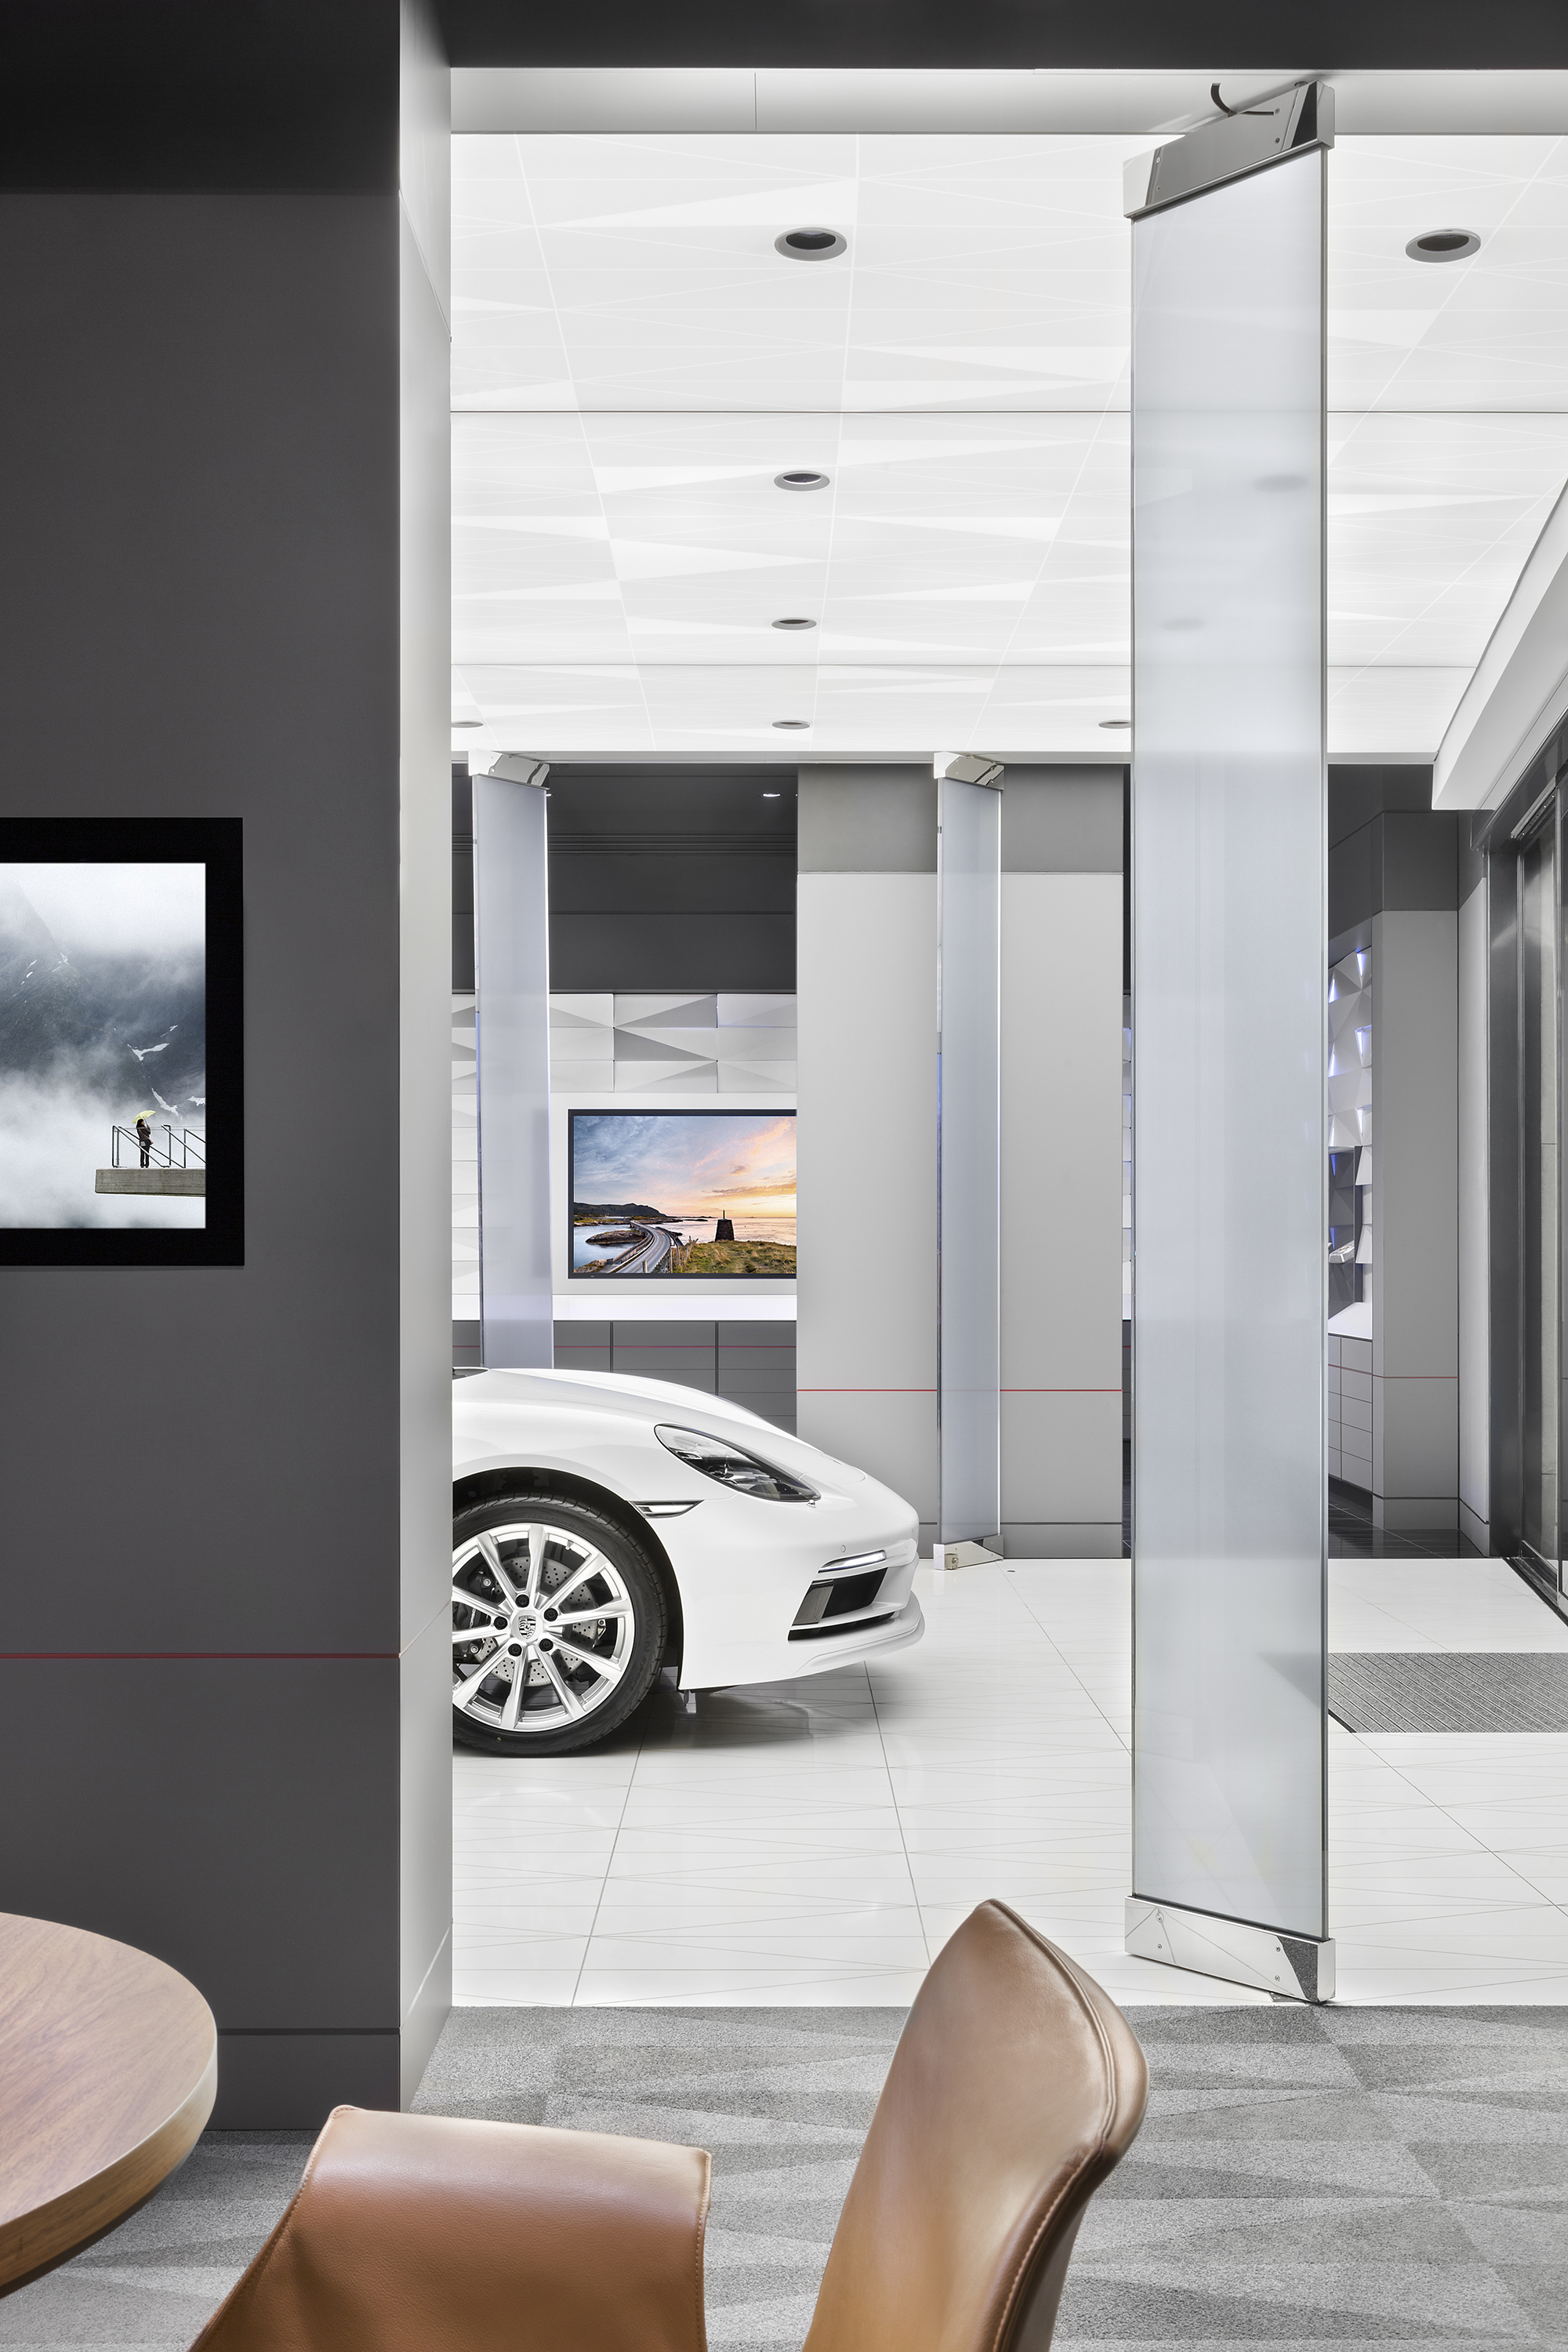 porsche-studio_retail-interior-design_coordination-berlin_06.jpg